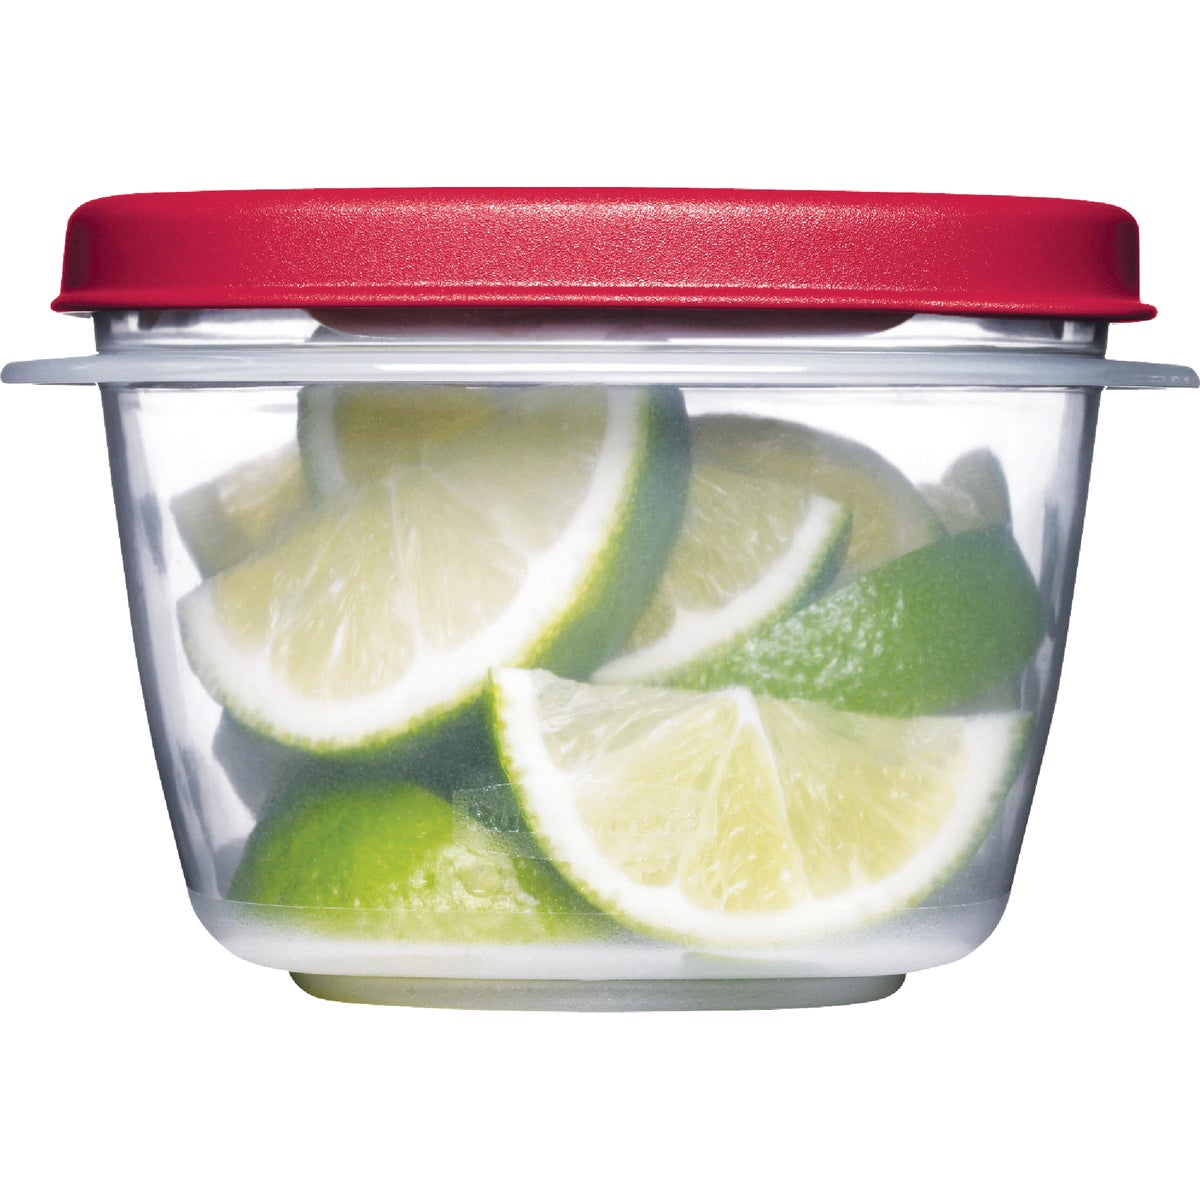 2 CUP FOOD CONTAINER - 1777085 by Rubbermaid Home